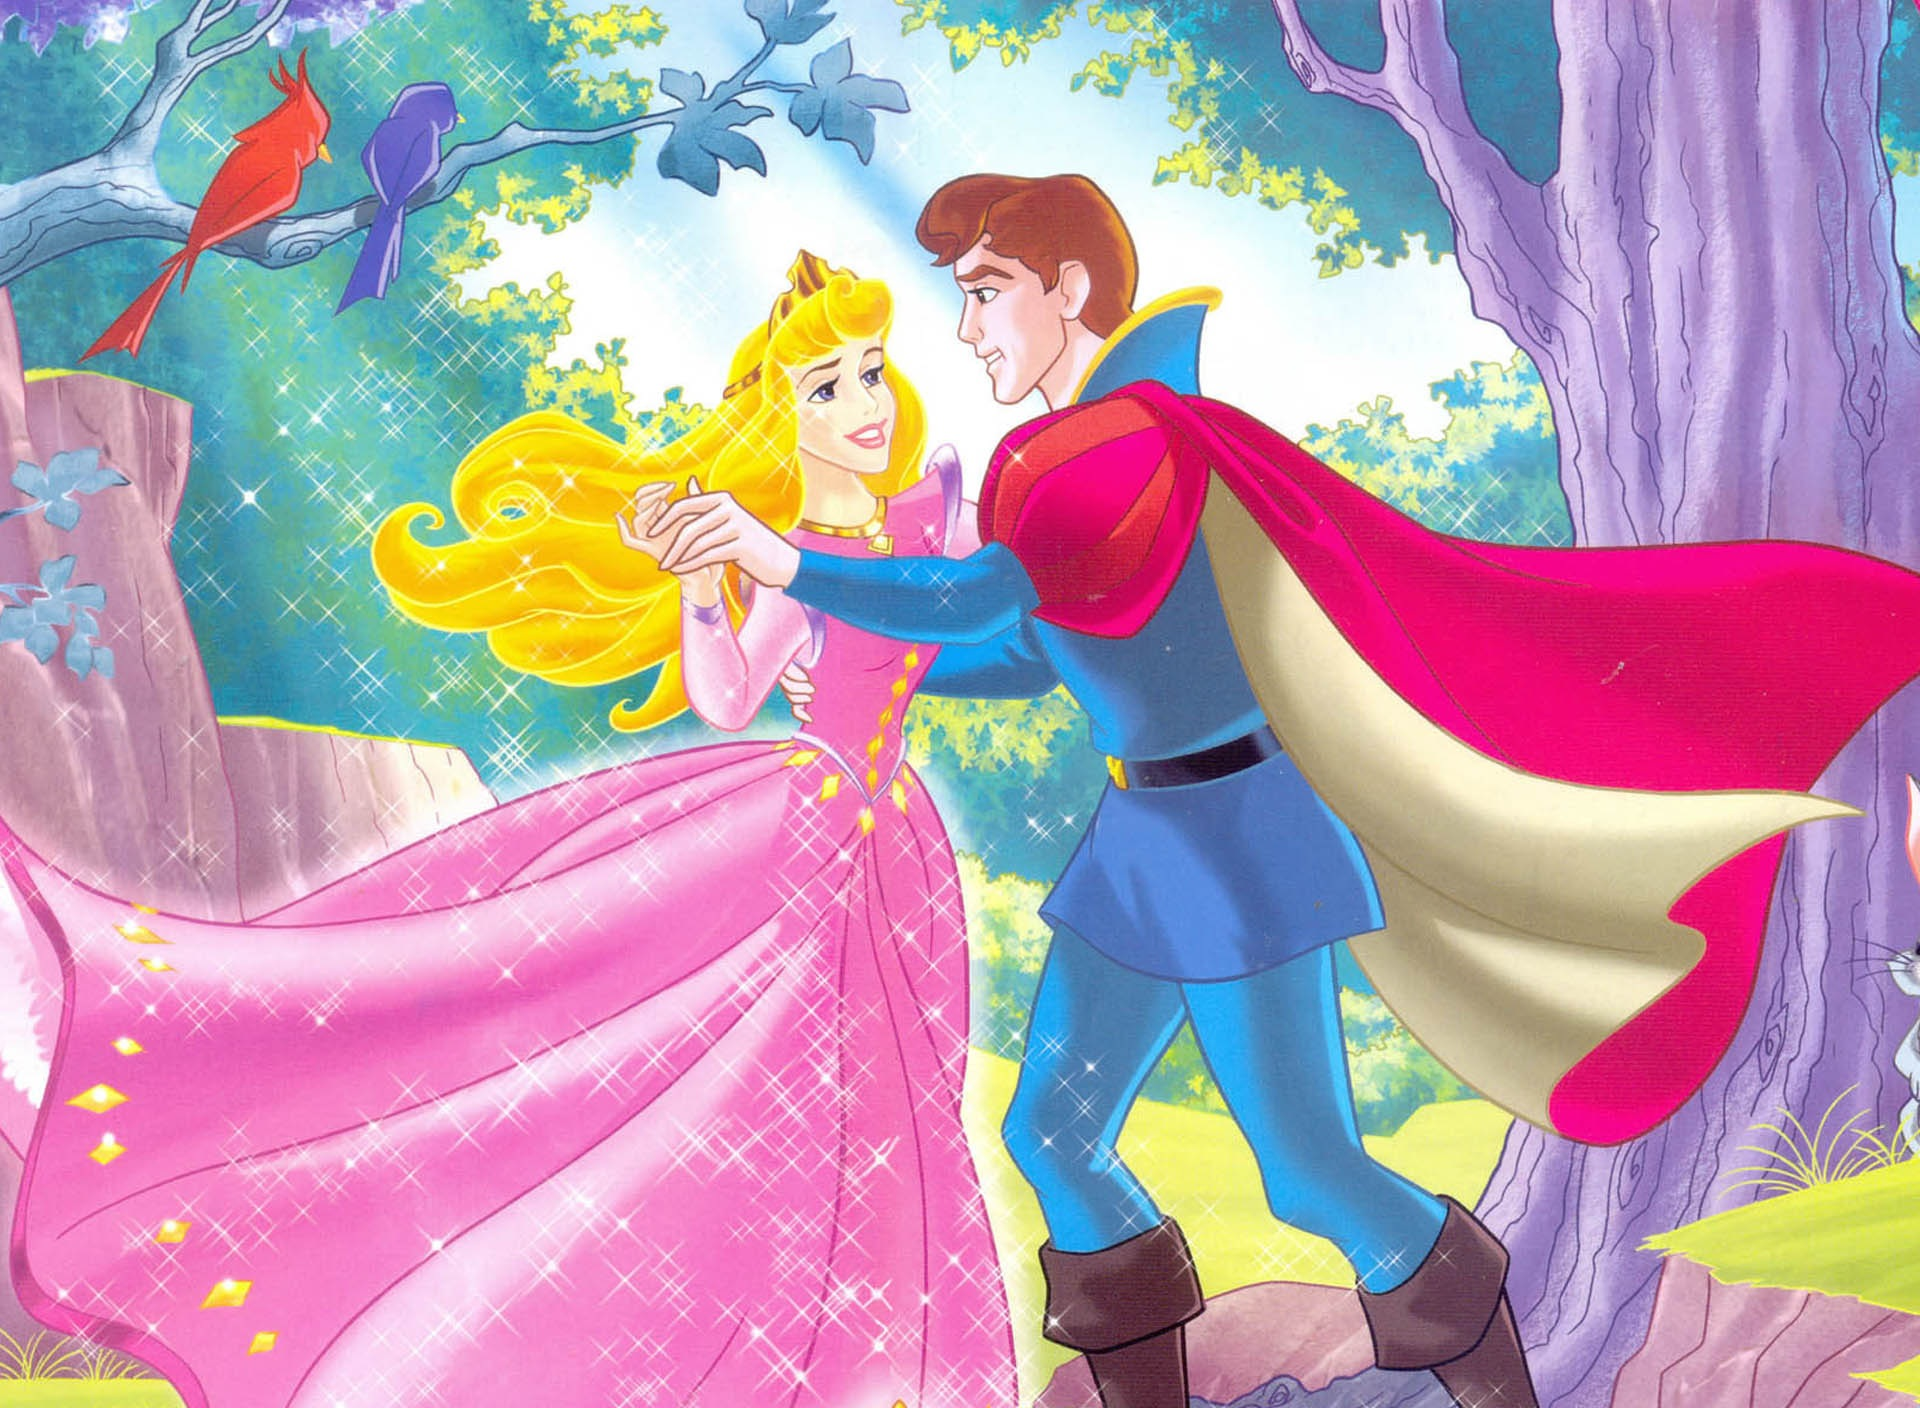 Free Download Tags Sleeping Beauty 1920x1408 Wallpaper1920x1408 Wallpaper 1920x1408 For Your Desktop Mobile Tablet Explore 77 Sleeping Beauty Wallpapers Vintage Sleeping Beauty Wallpaper Disney Sleeping Beauty Wallpaper Beauty Wallpaper Pics